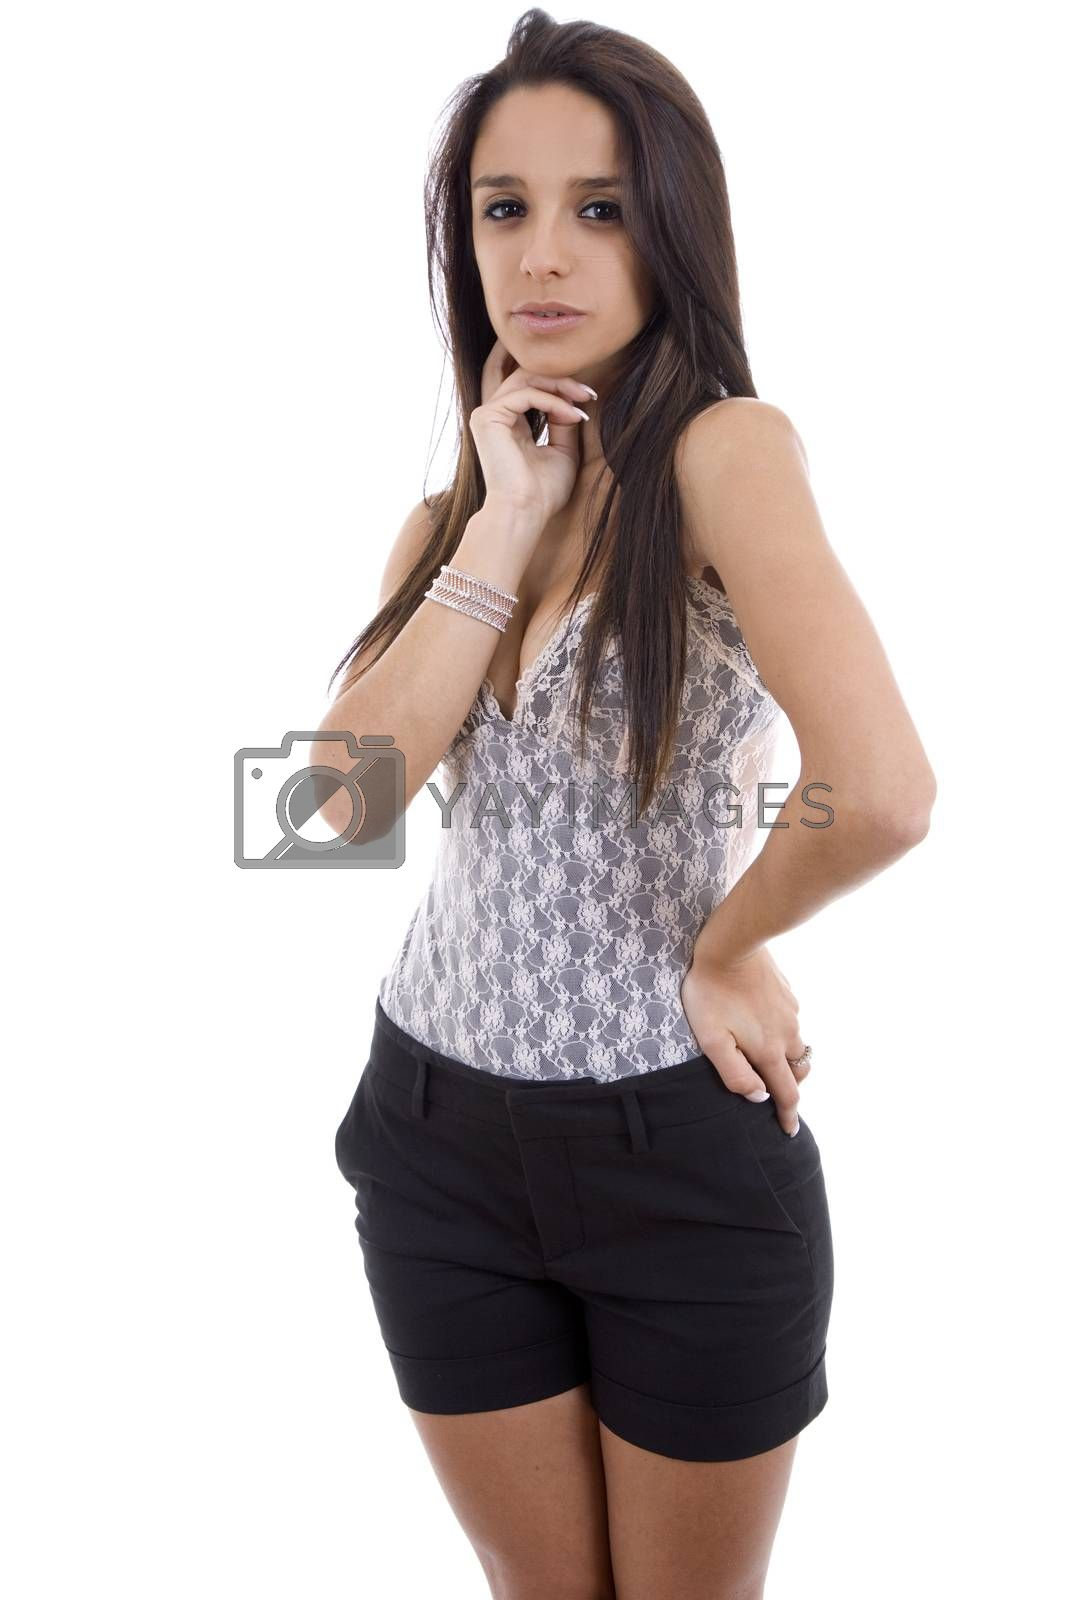 Royalty free image of beautiful woman by zittto